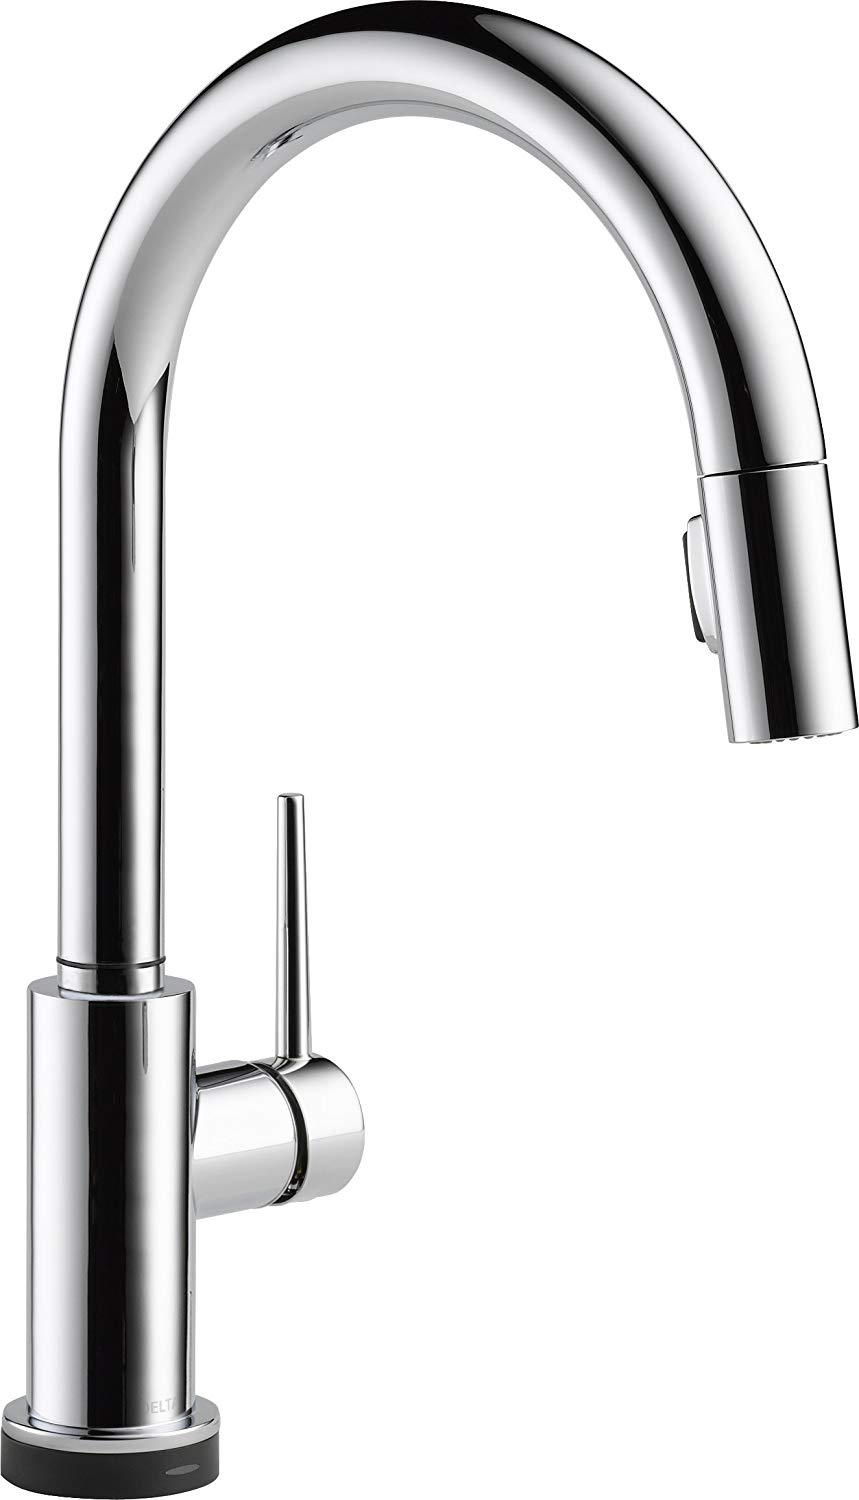 Delta Faucet Trinsic Single Handle Touch Kitchen Sink Faucet With